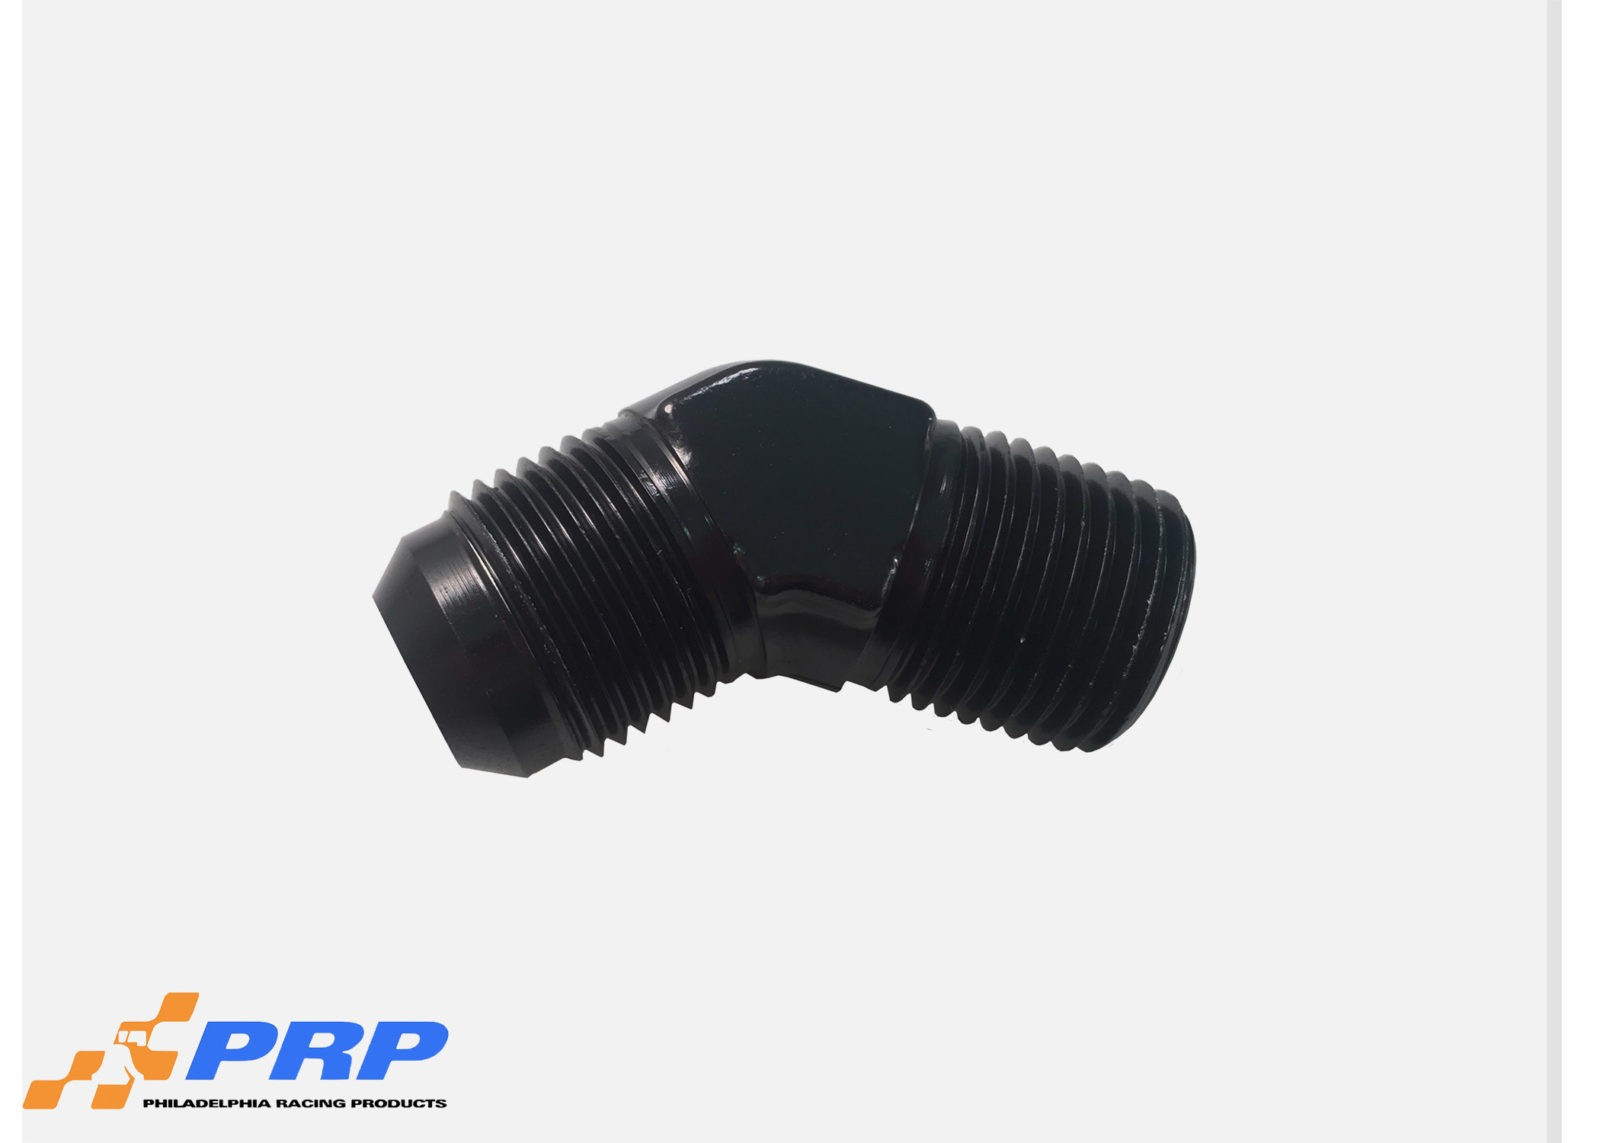 Black 45 Degree Flare to Pipe Elbow made by PRP Racing Products